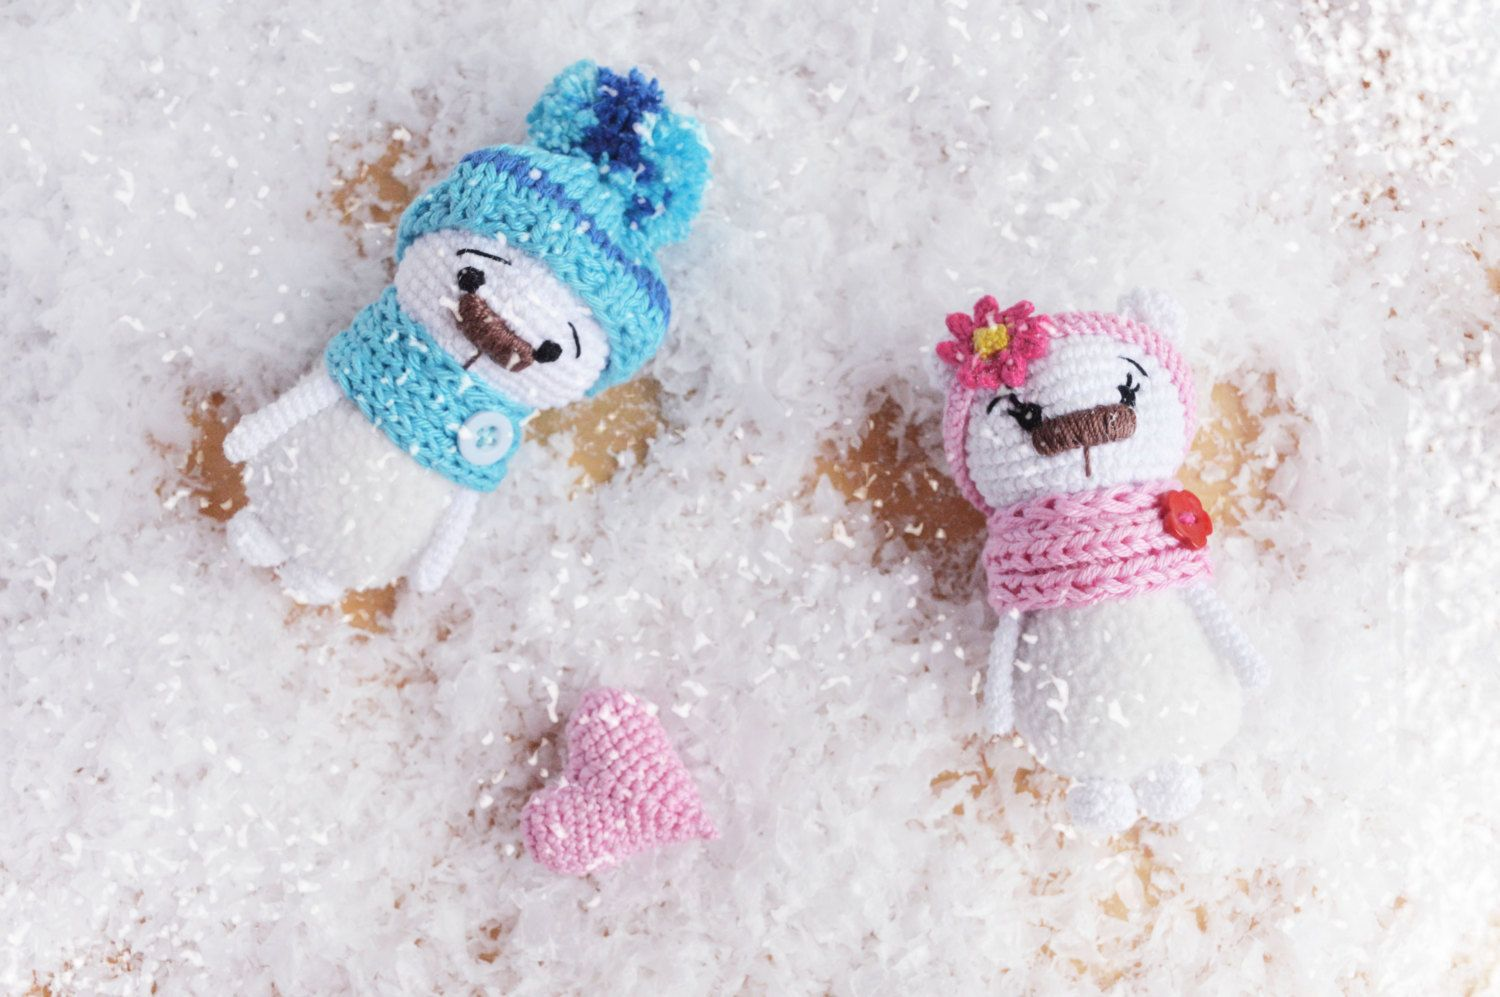 Set of Two Tiny crocheted bear with heart /decorative soft cute crocheted toy /plush Amigurumi / stuffed animal/ St.Valentine day gift #Etsy #Share #EtsyShop Shared by #BaliTribalJewelry http://etsy.me/1sDZ302